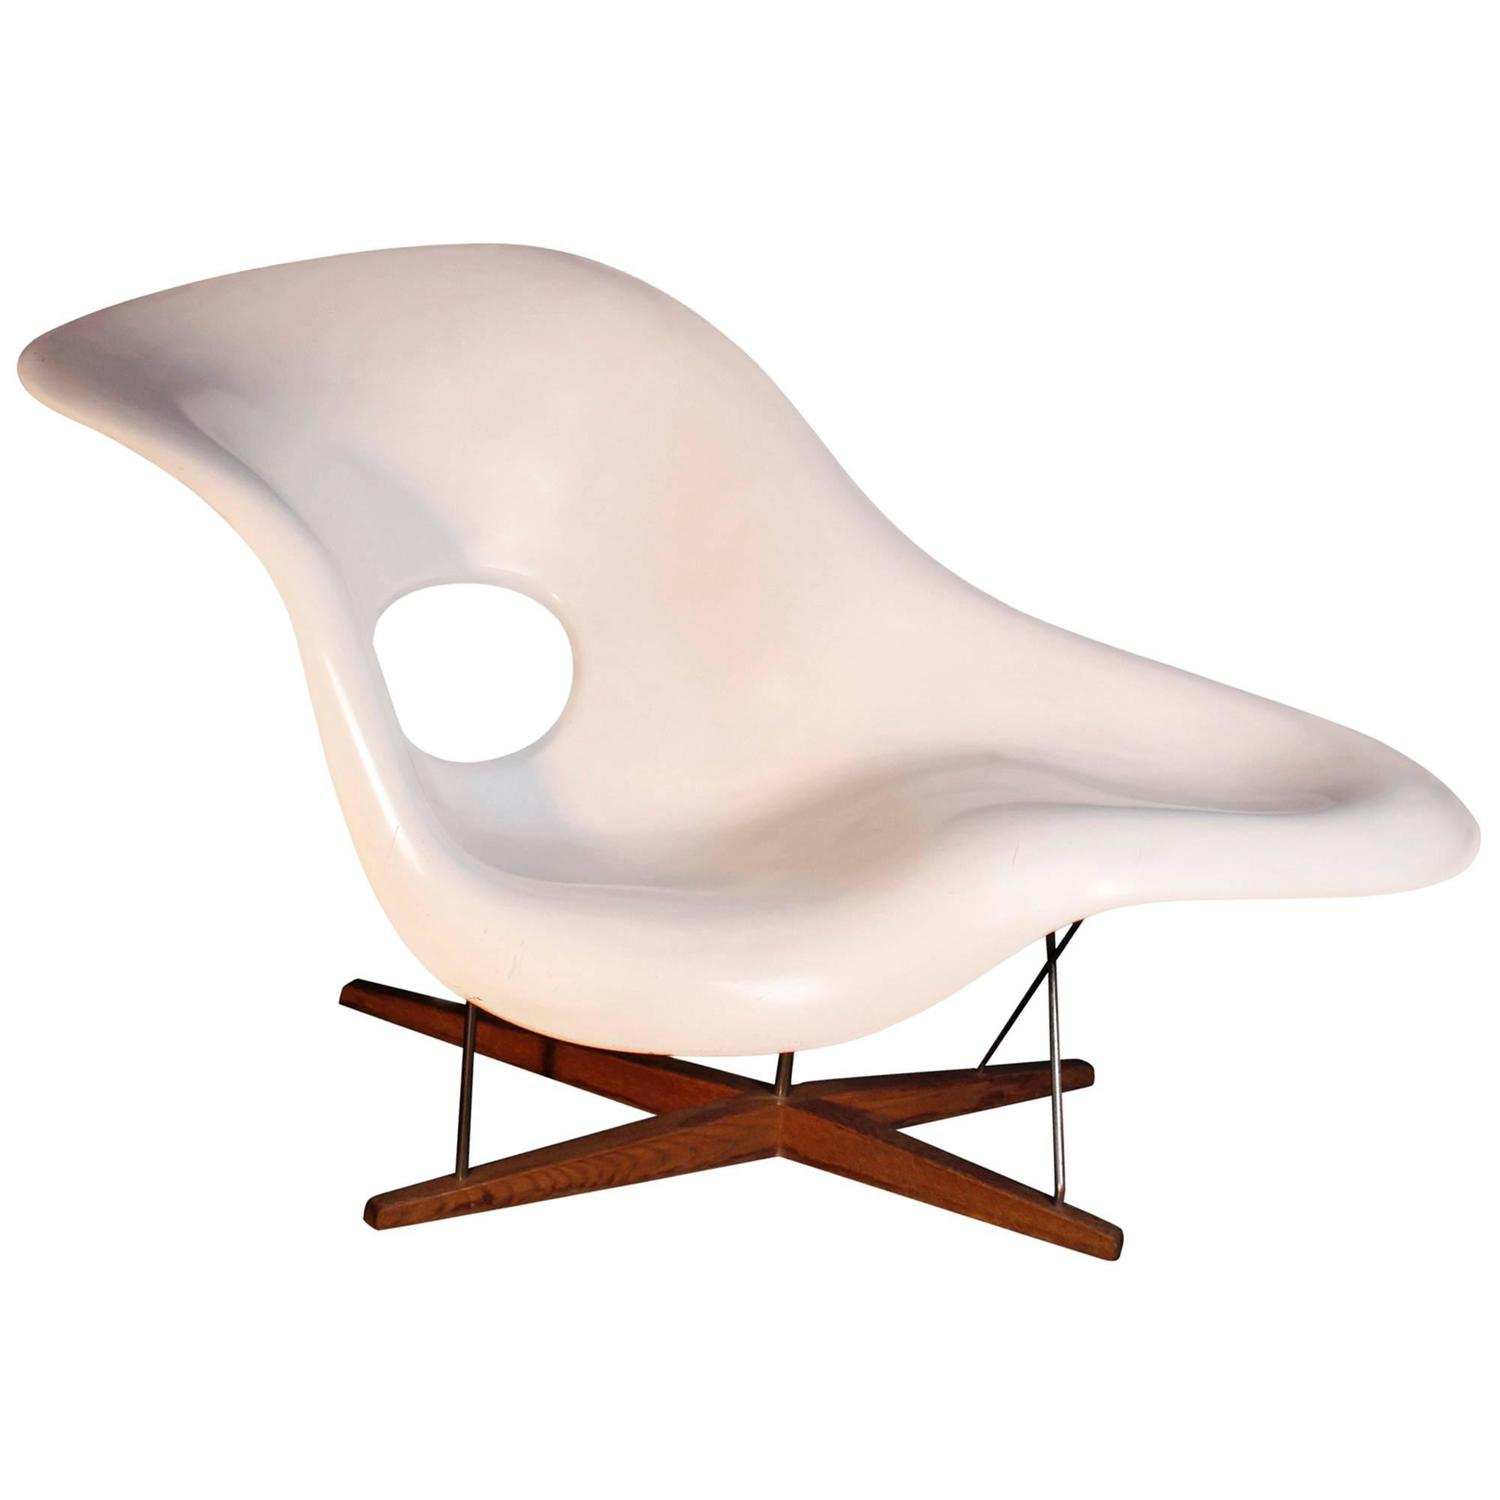 La chaise charles eames chaise longue for sale at 1stdibs for Chaise longue plastique